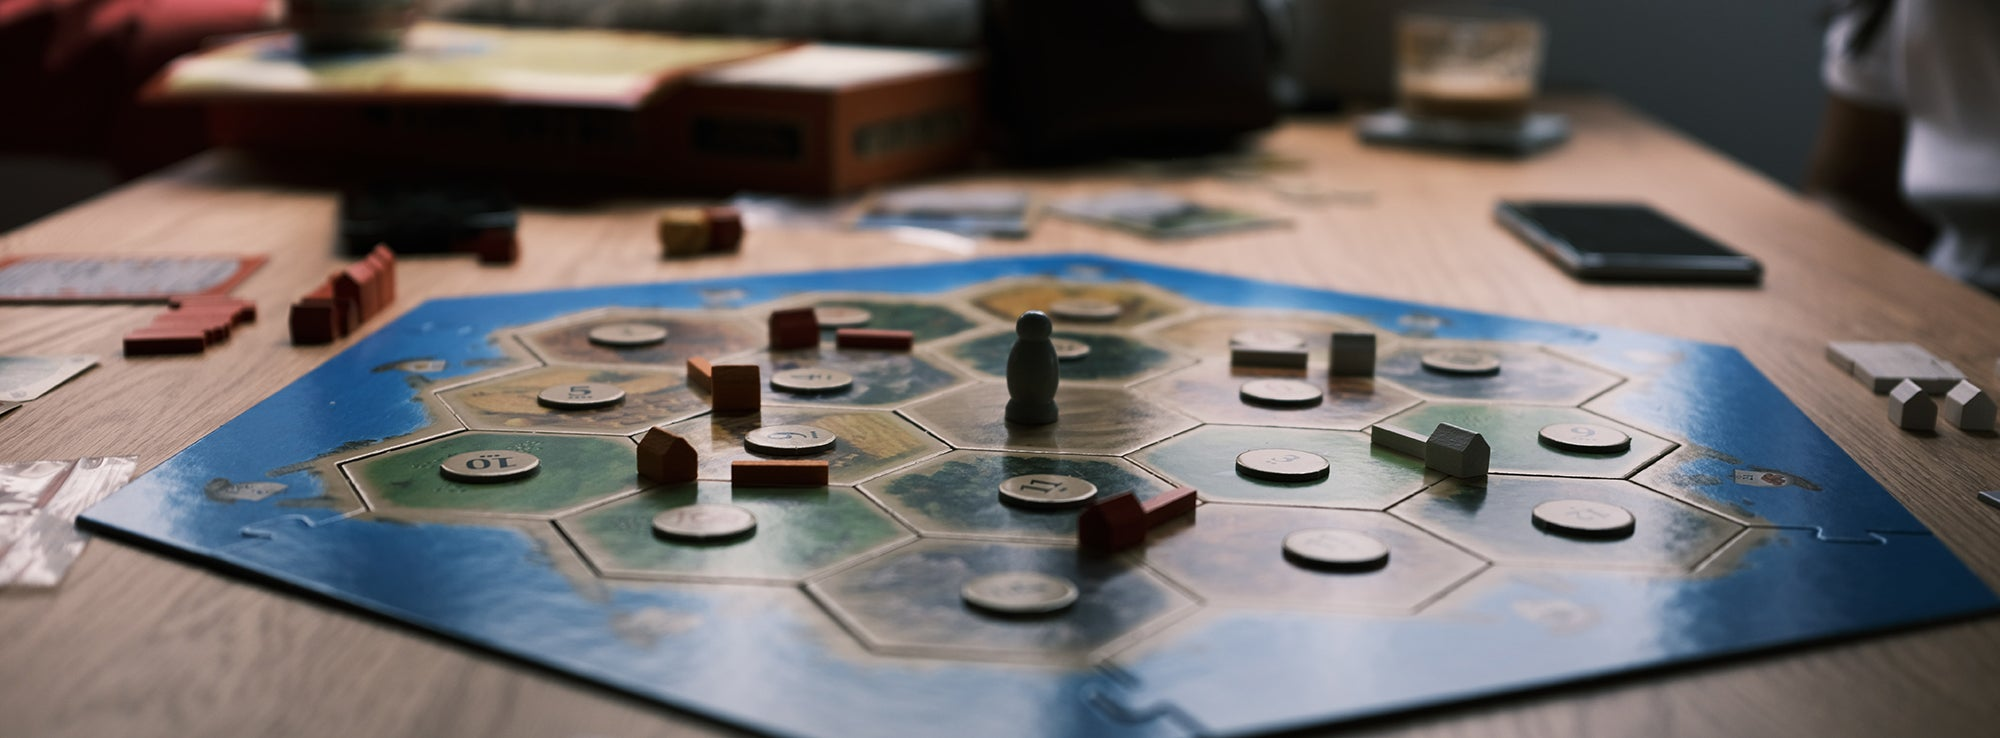 The settlers of catan board game is one of the best board games for adults.